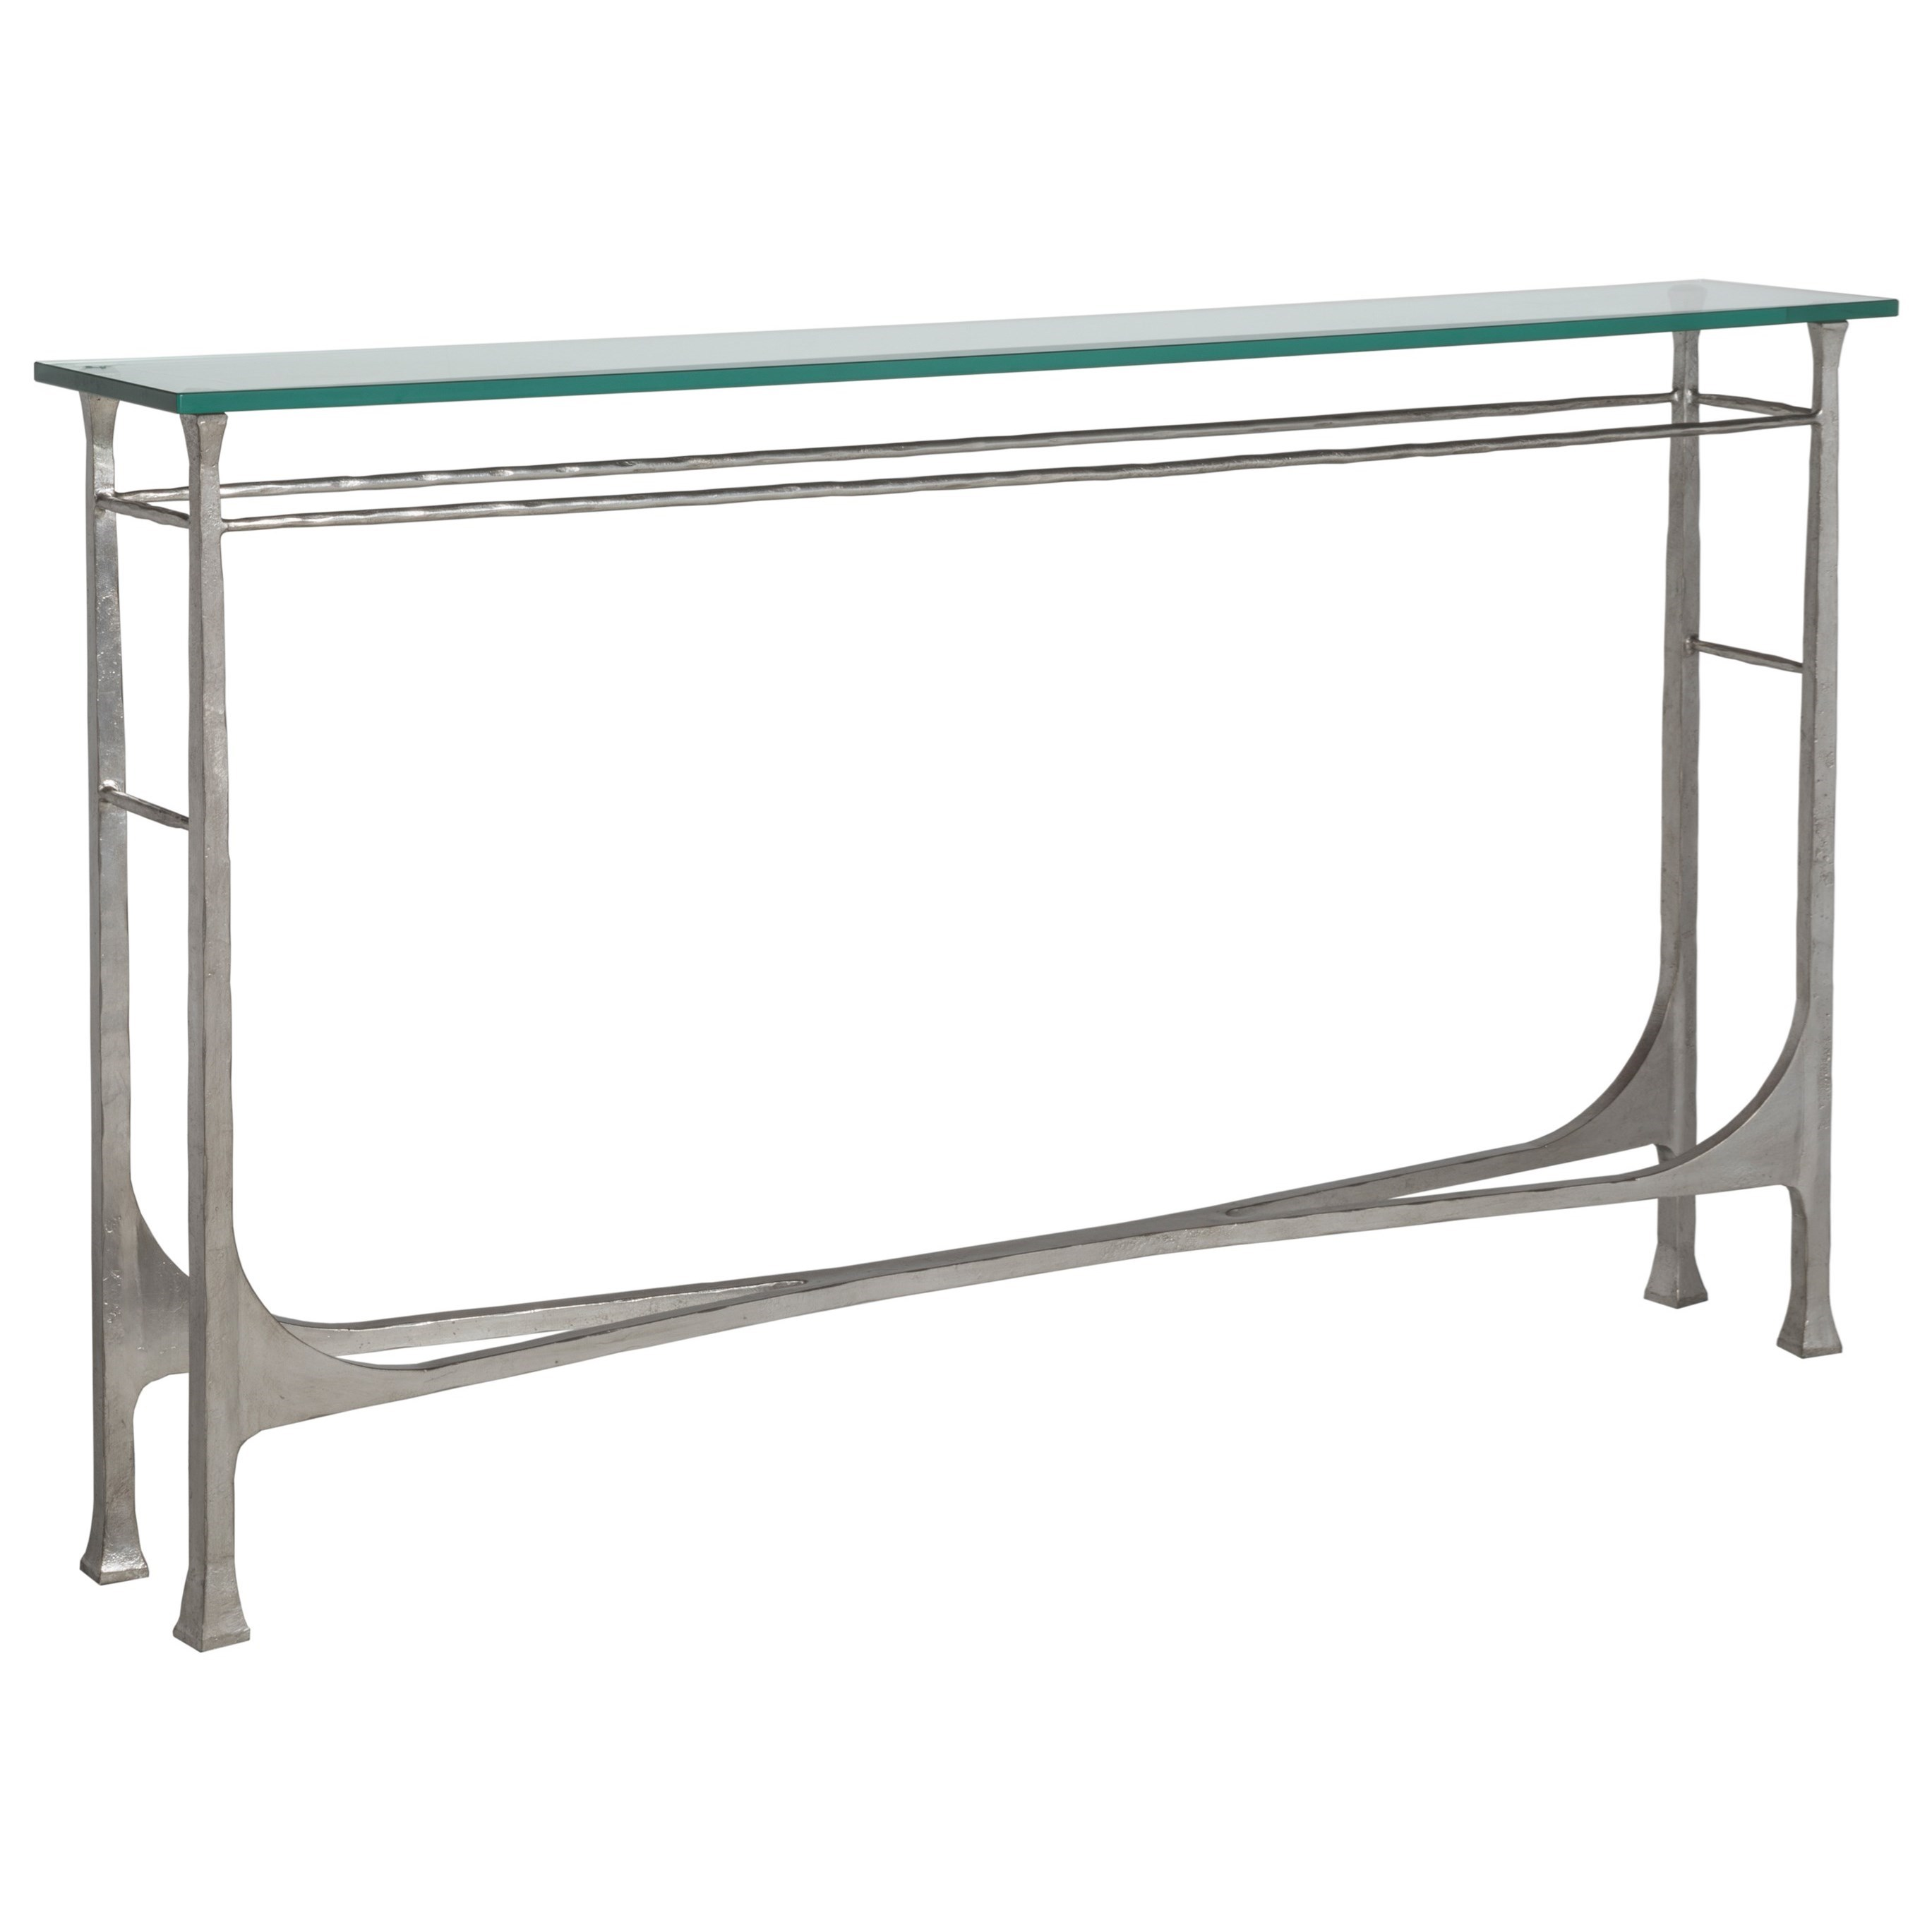 Metal Designs Bruno Console by Artistica at Alison Craig Home Furnishings